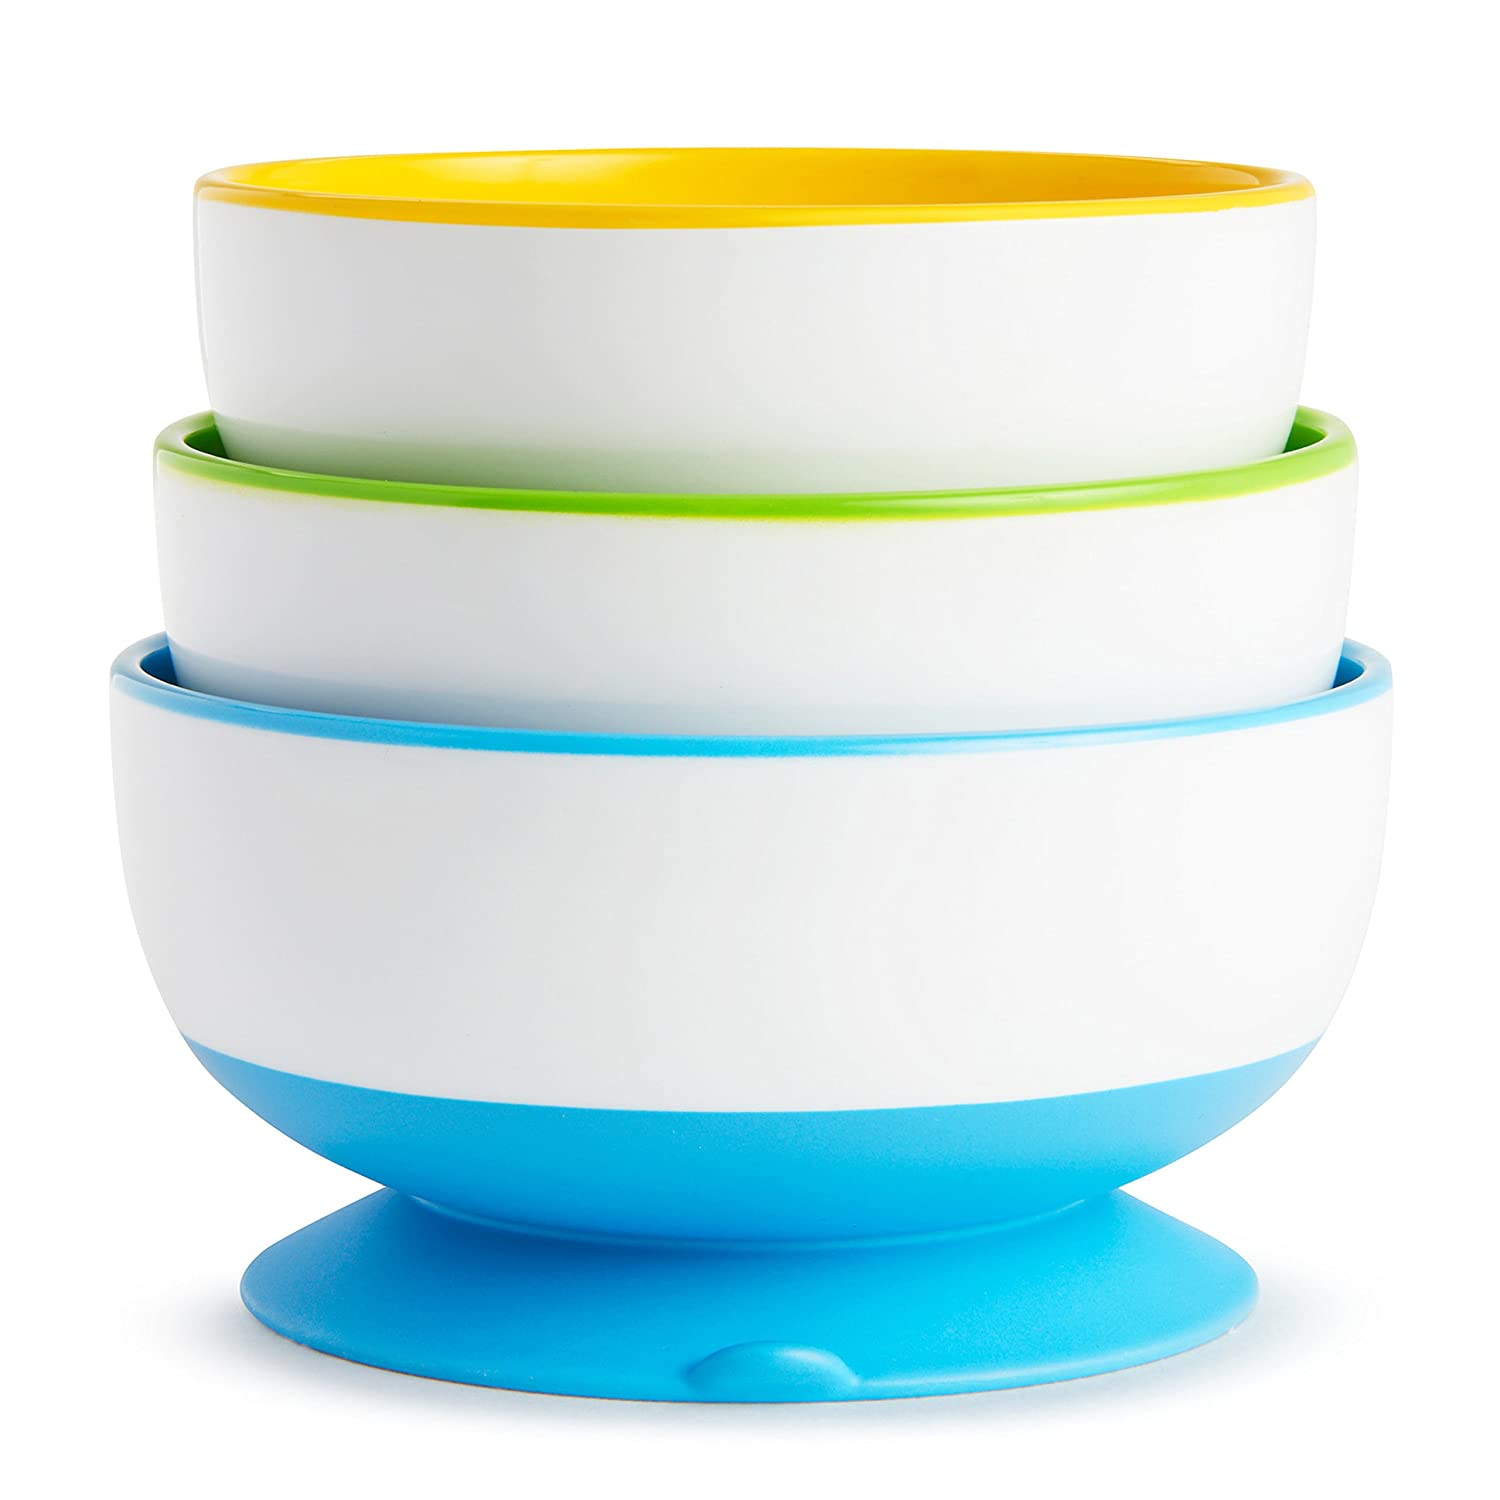 Top 9 Best Baby Bowls and Plates Reviews in 2019 1